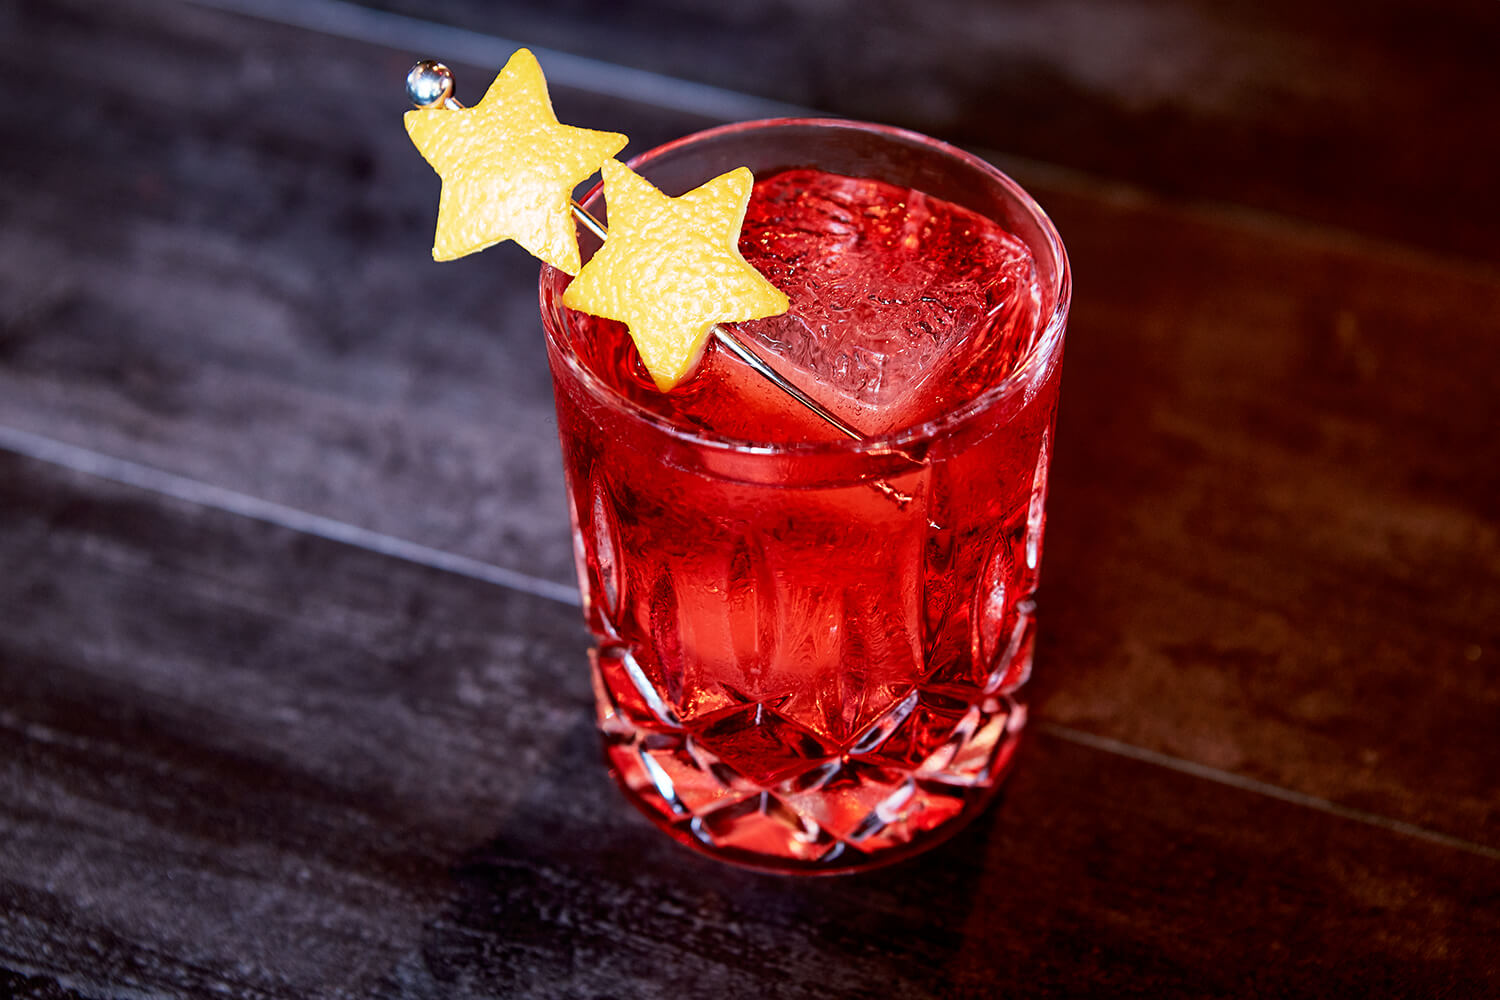 The Red Planet Negroni from The NoMad - 9 #negroniweek riffs